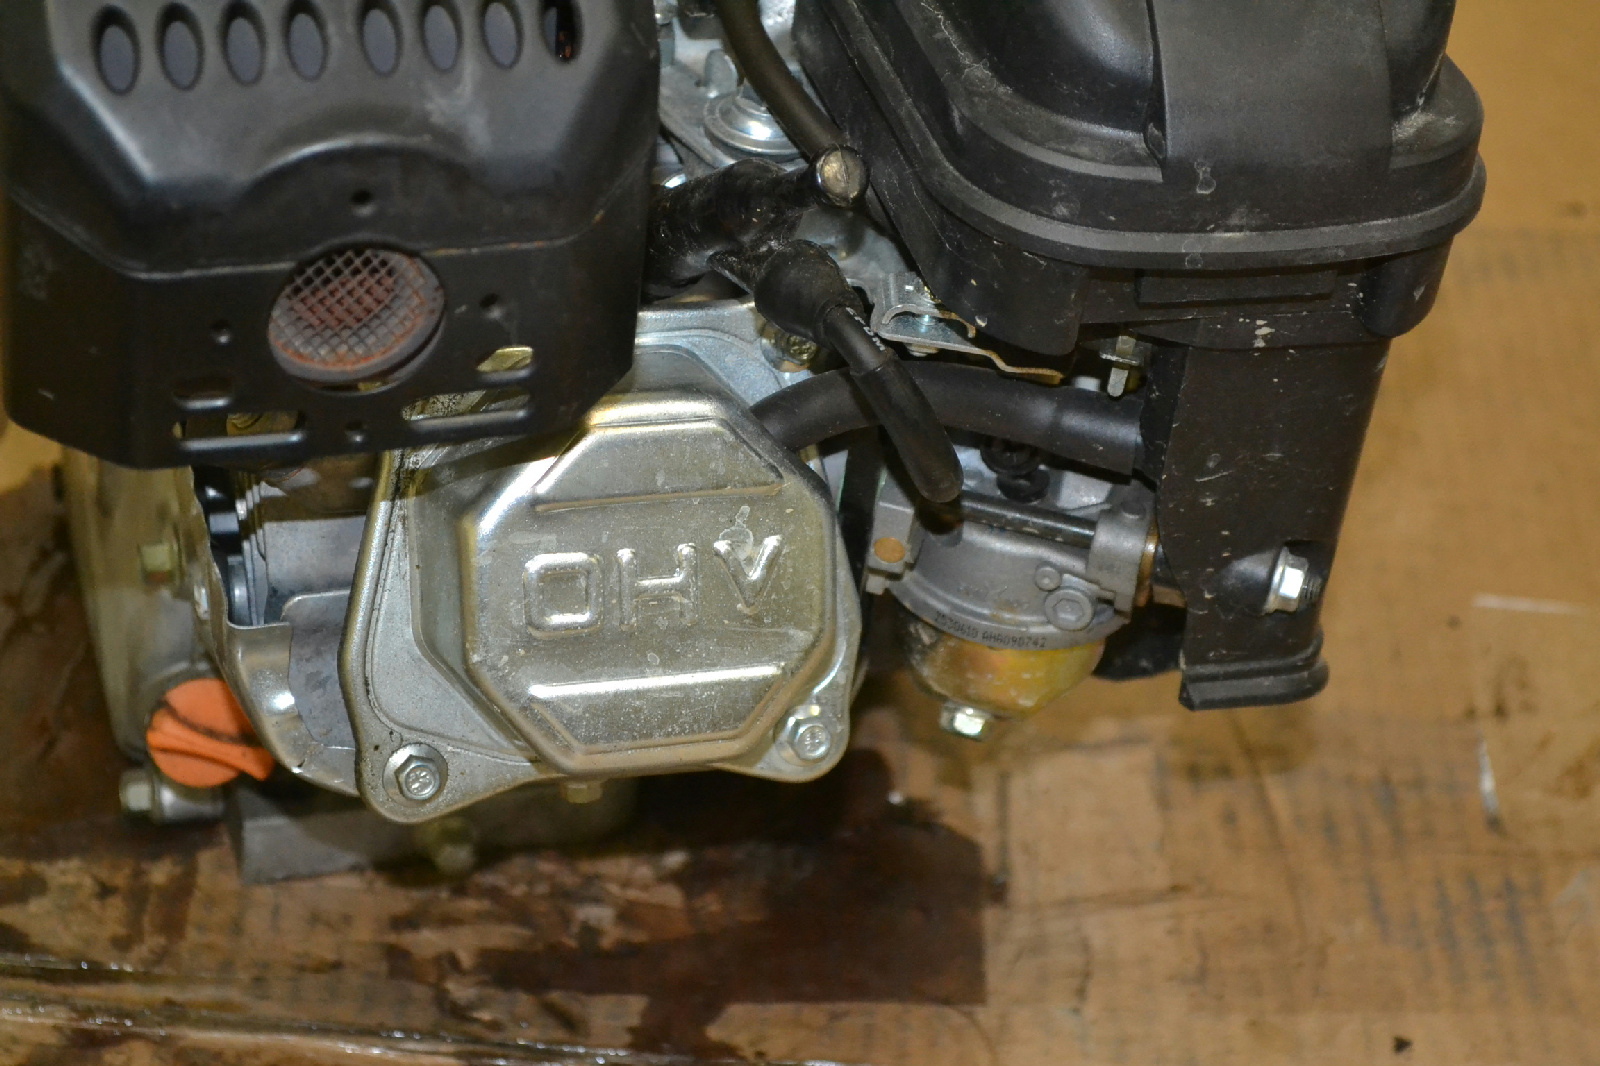 212 cc OHV Horizontal Shaft Gas Engine - Certified for All ...